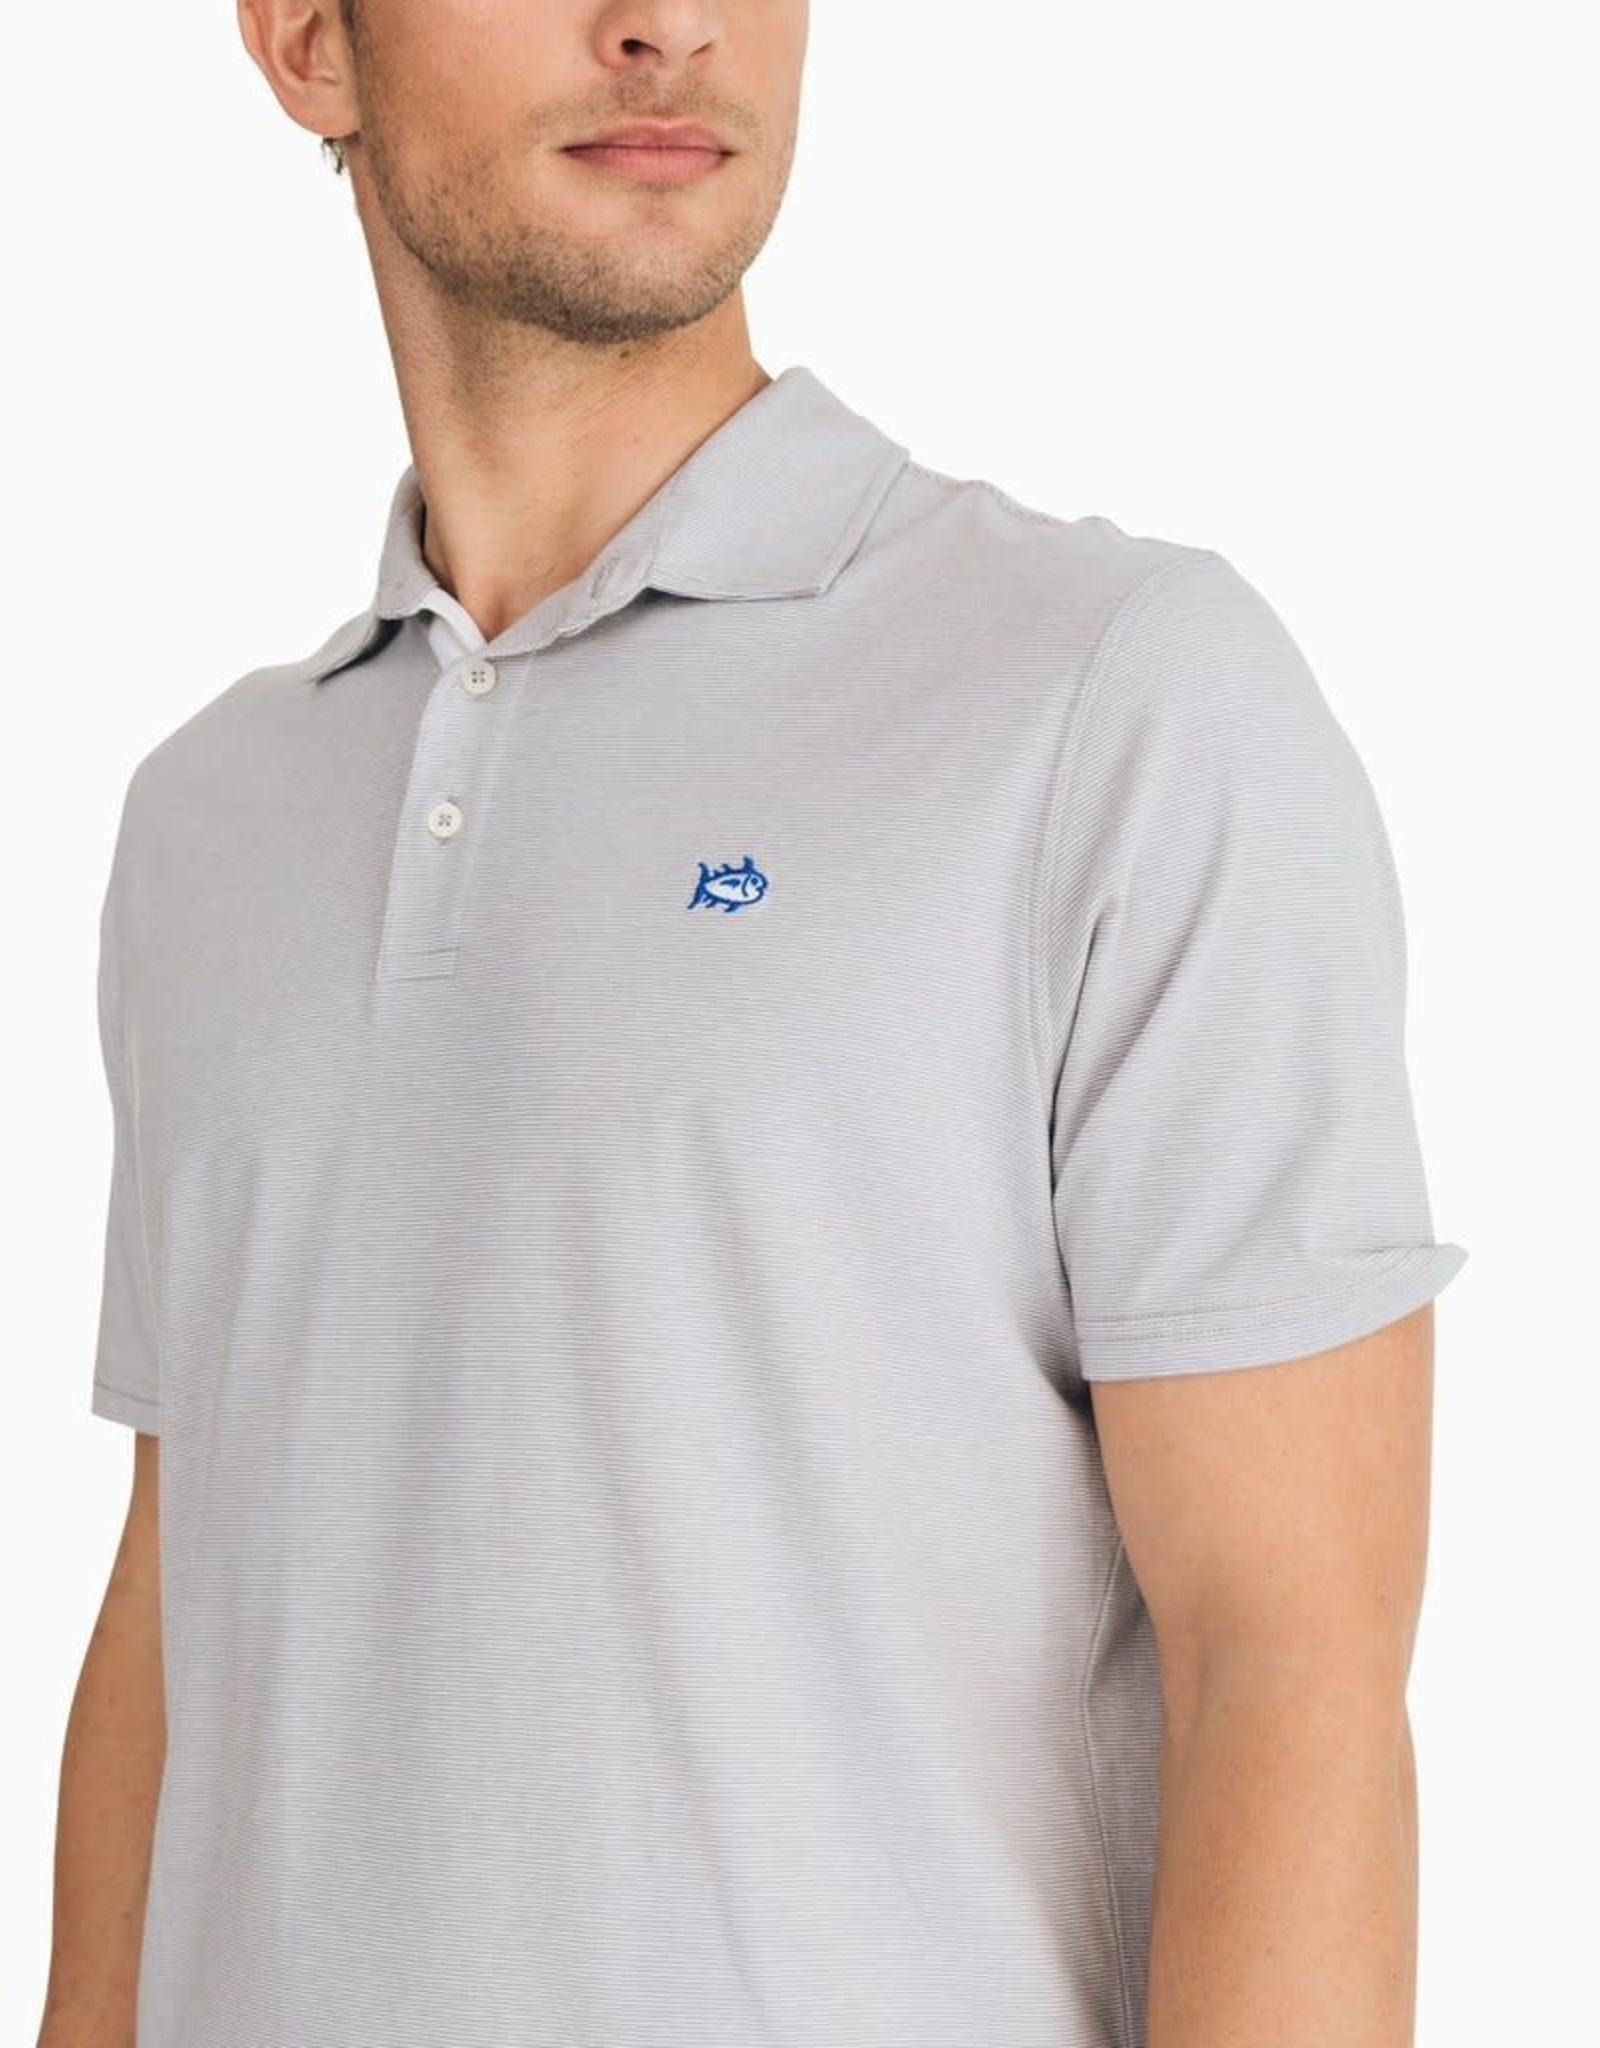 Southern Tide 6120 - Channel Marker Striped Polo